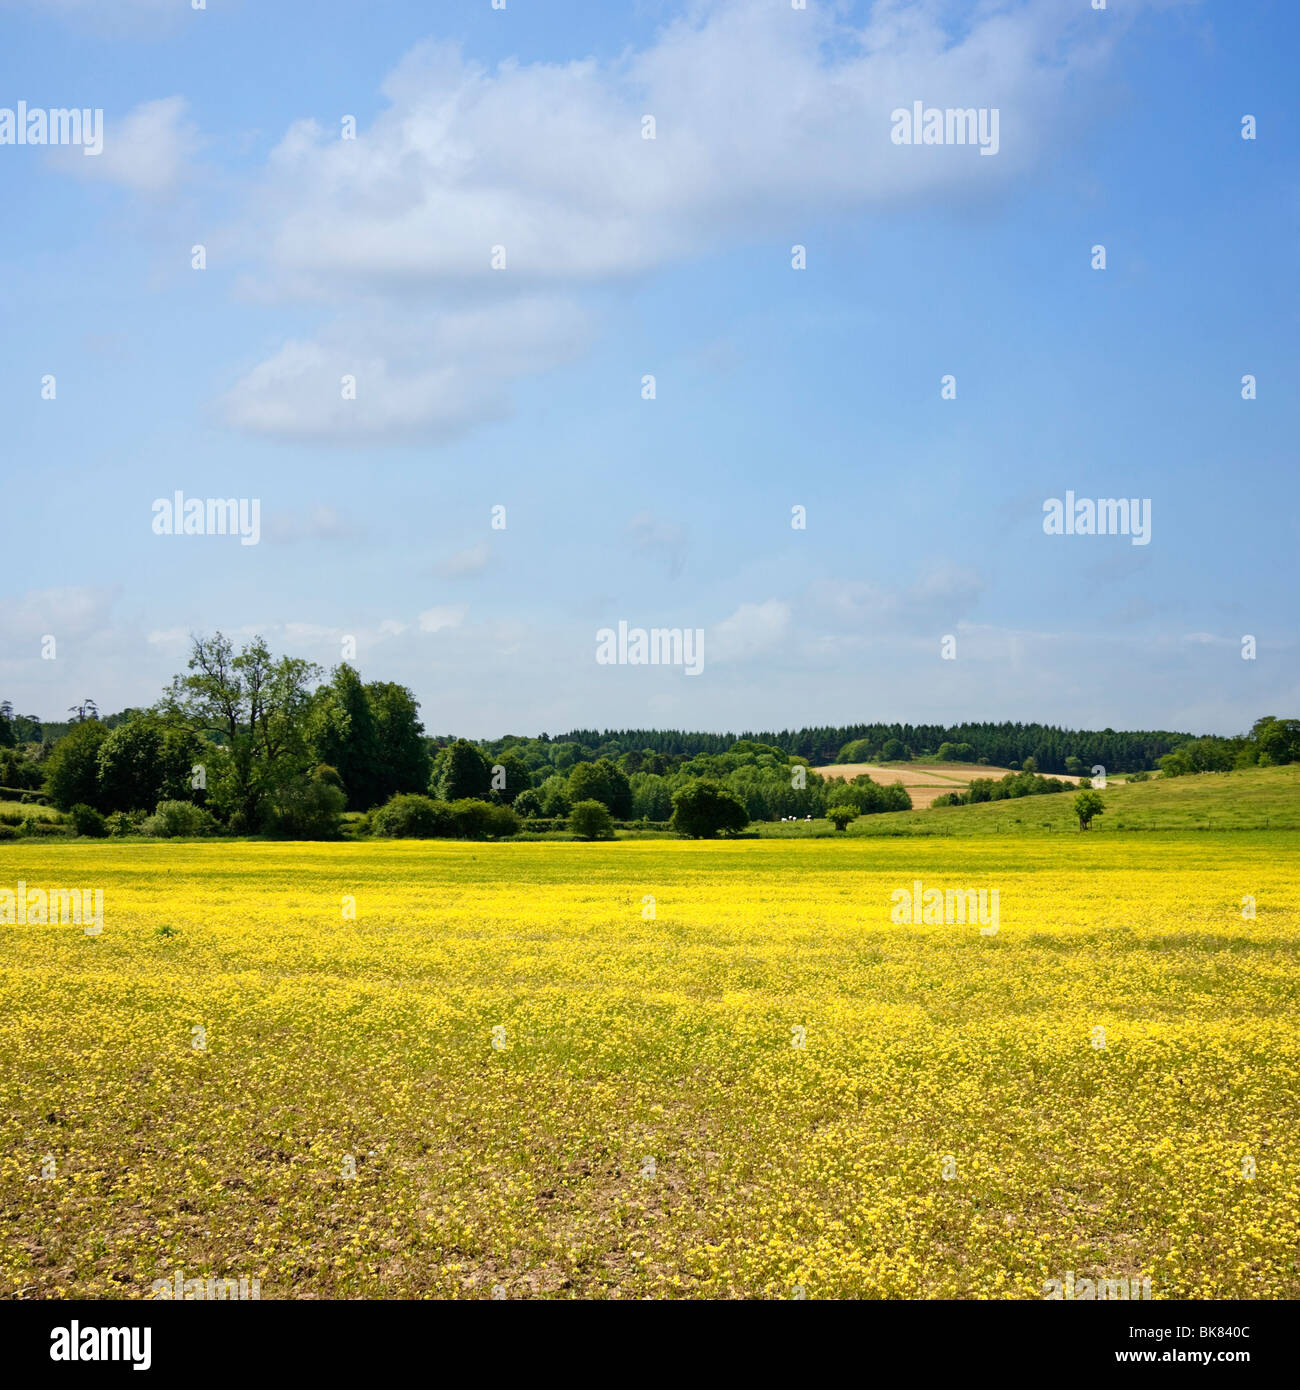 Landscape and field of Buttercups near Albury, Surrey, England, UK - Stock Image